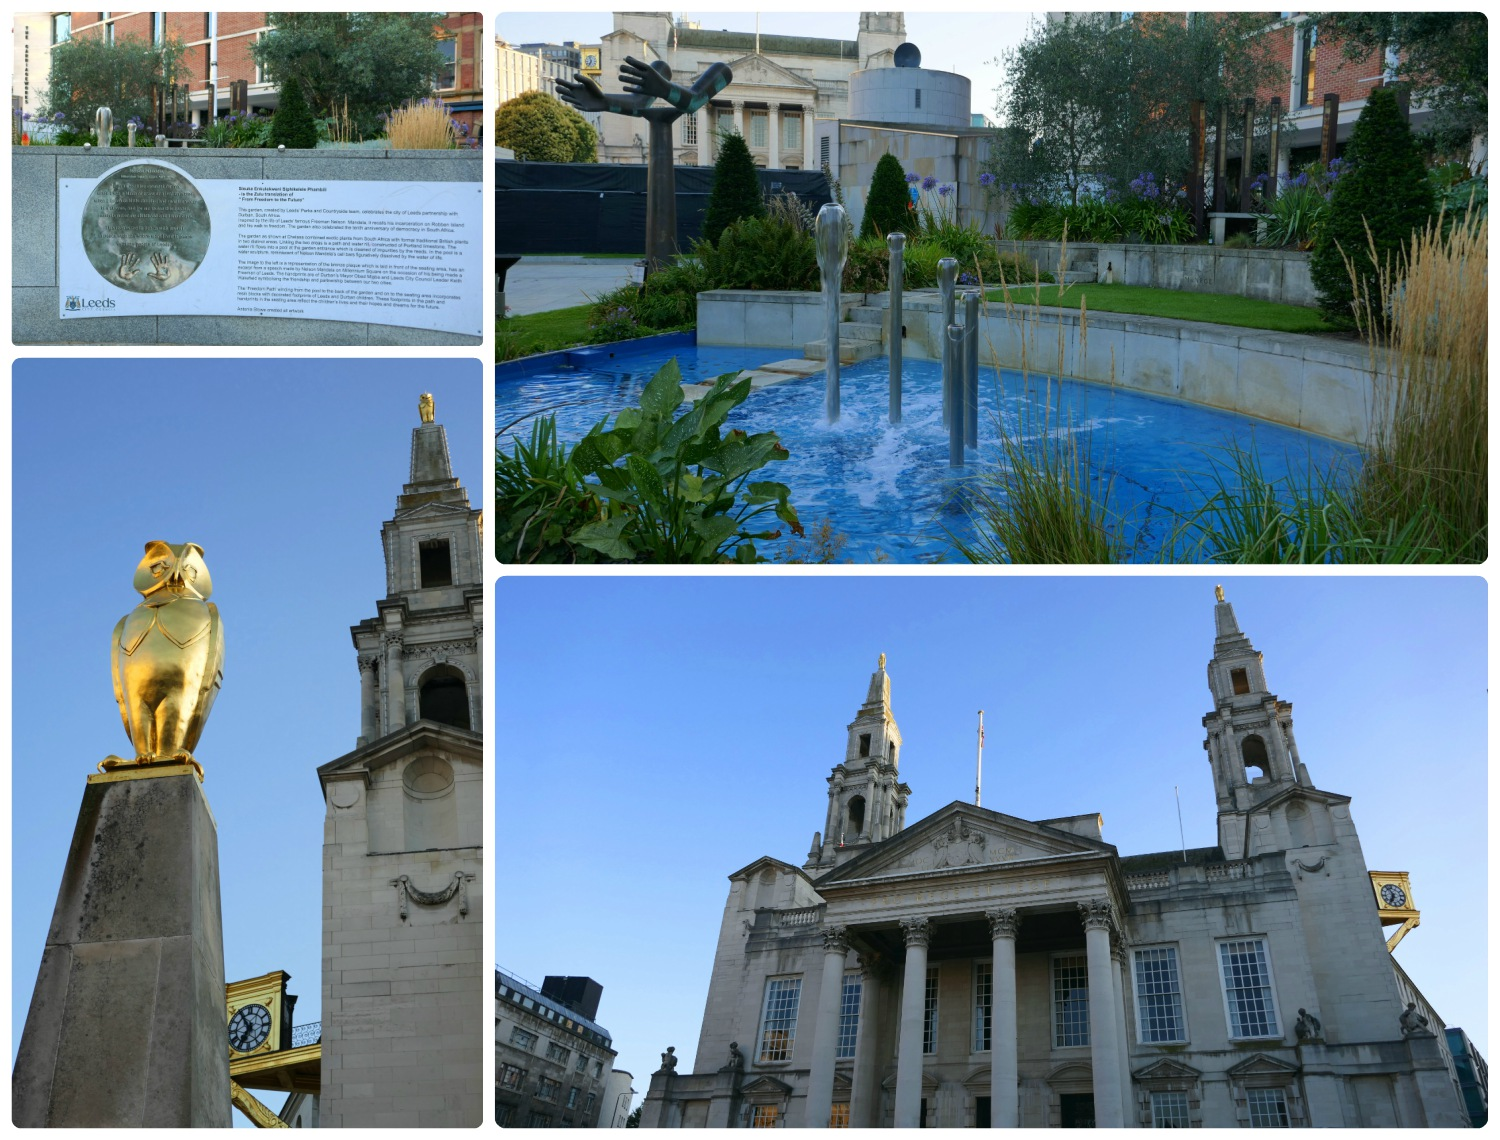 At the center of city events,Millennium Square is surrounded by wonderful architecture and the Nelson Mandela Gardens.